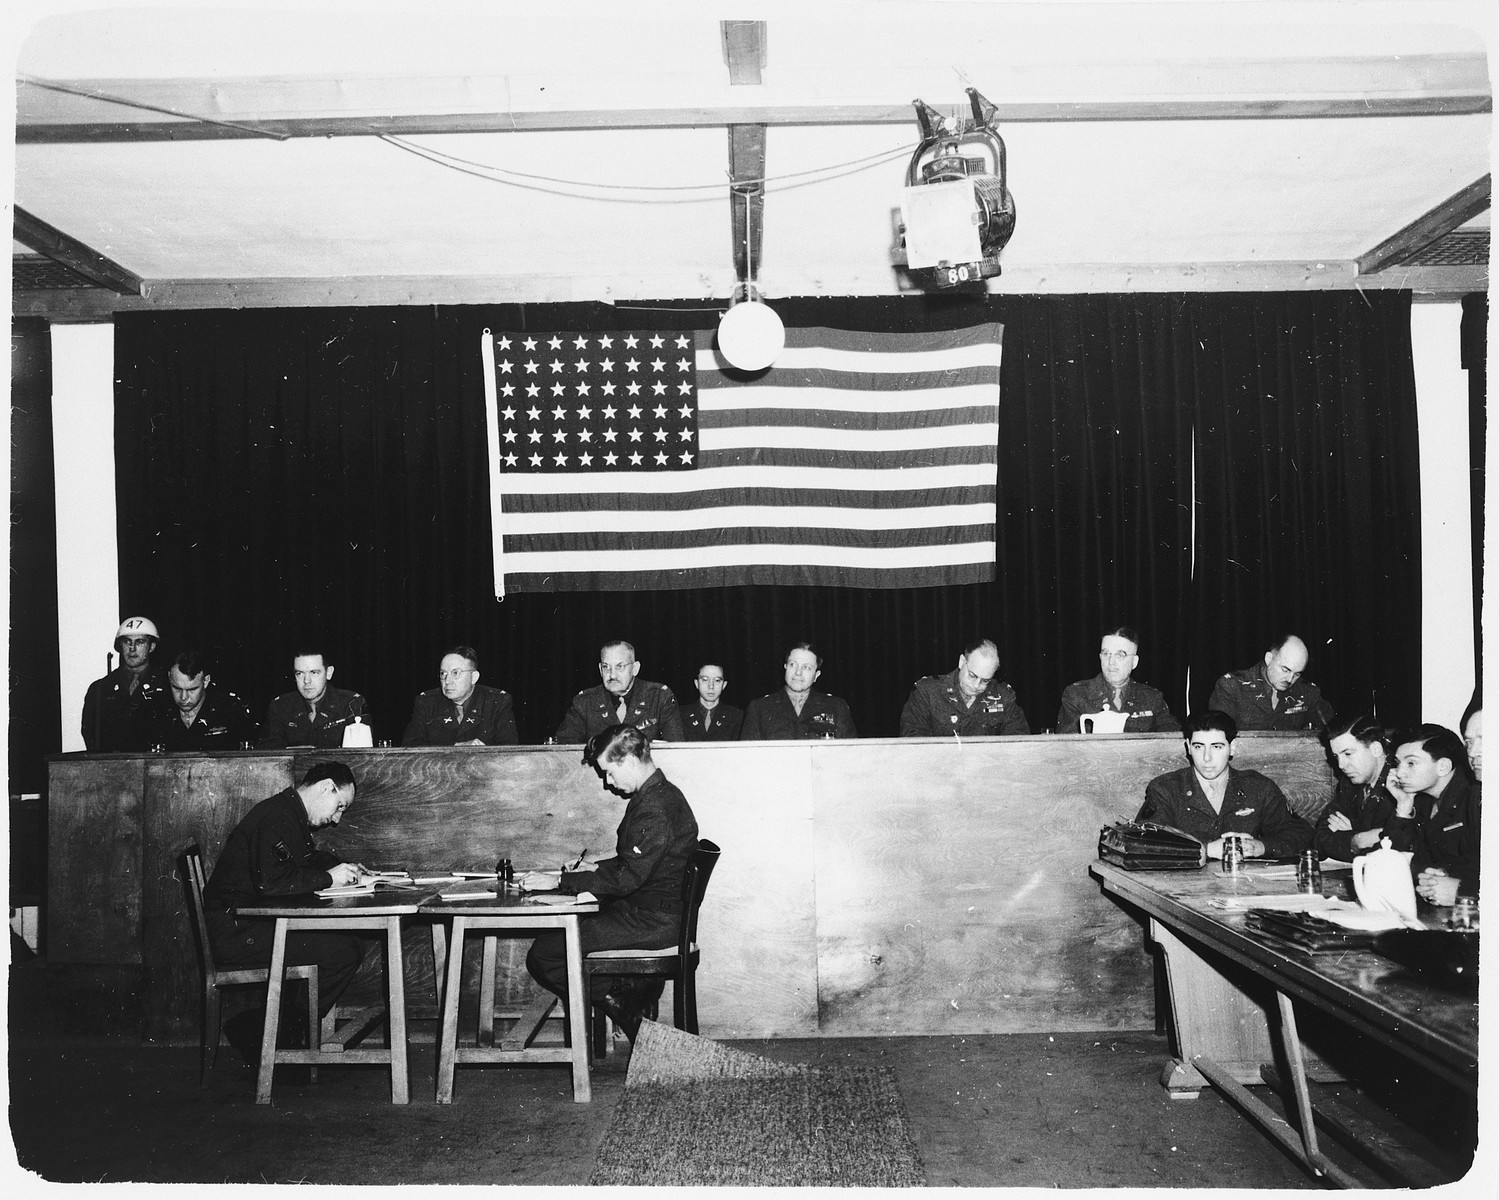 View of the judges bench of the Dachau trial.  A large American flag hangs behind them.  Interpreters for the defense sit at the table to the right of the judges. Among those pictured is Otto Ludwig Stein, third from the left, a 20 year old Sargeant in the US Army. Otto was a Jewish refugee that left Berlin in 1939 and immigrated to the United States. He joined the Army in 1944 and was given the choice of going to Europe or the Pacific, he chose Europe.